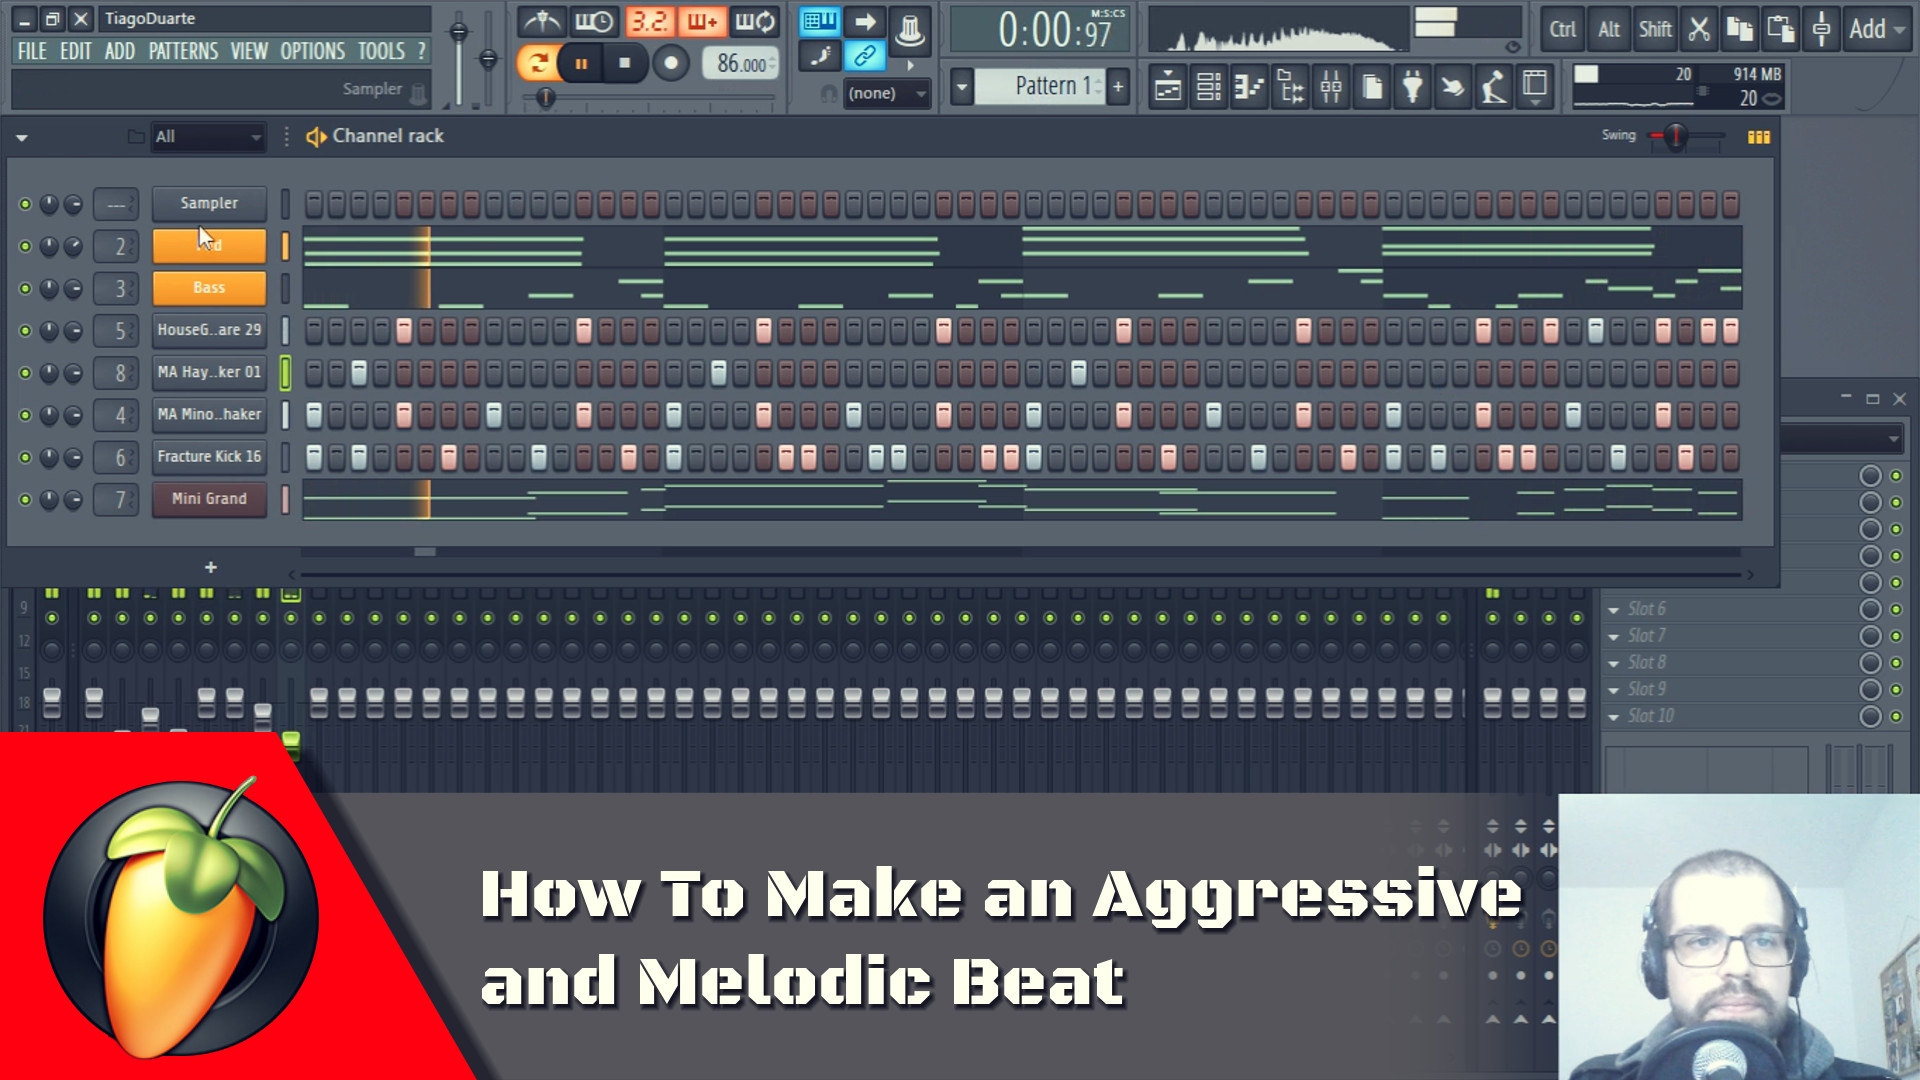 How To Make an Aggressive and Melodic Beat